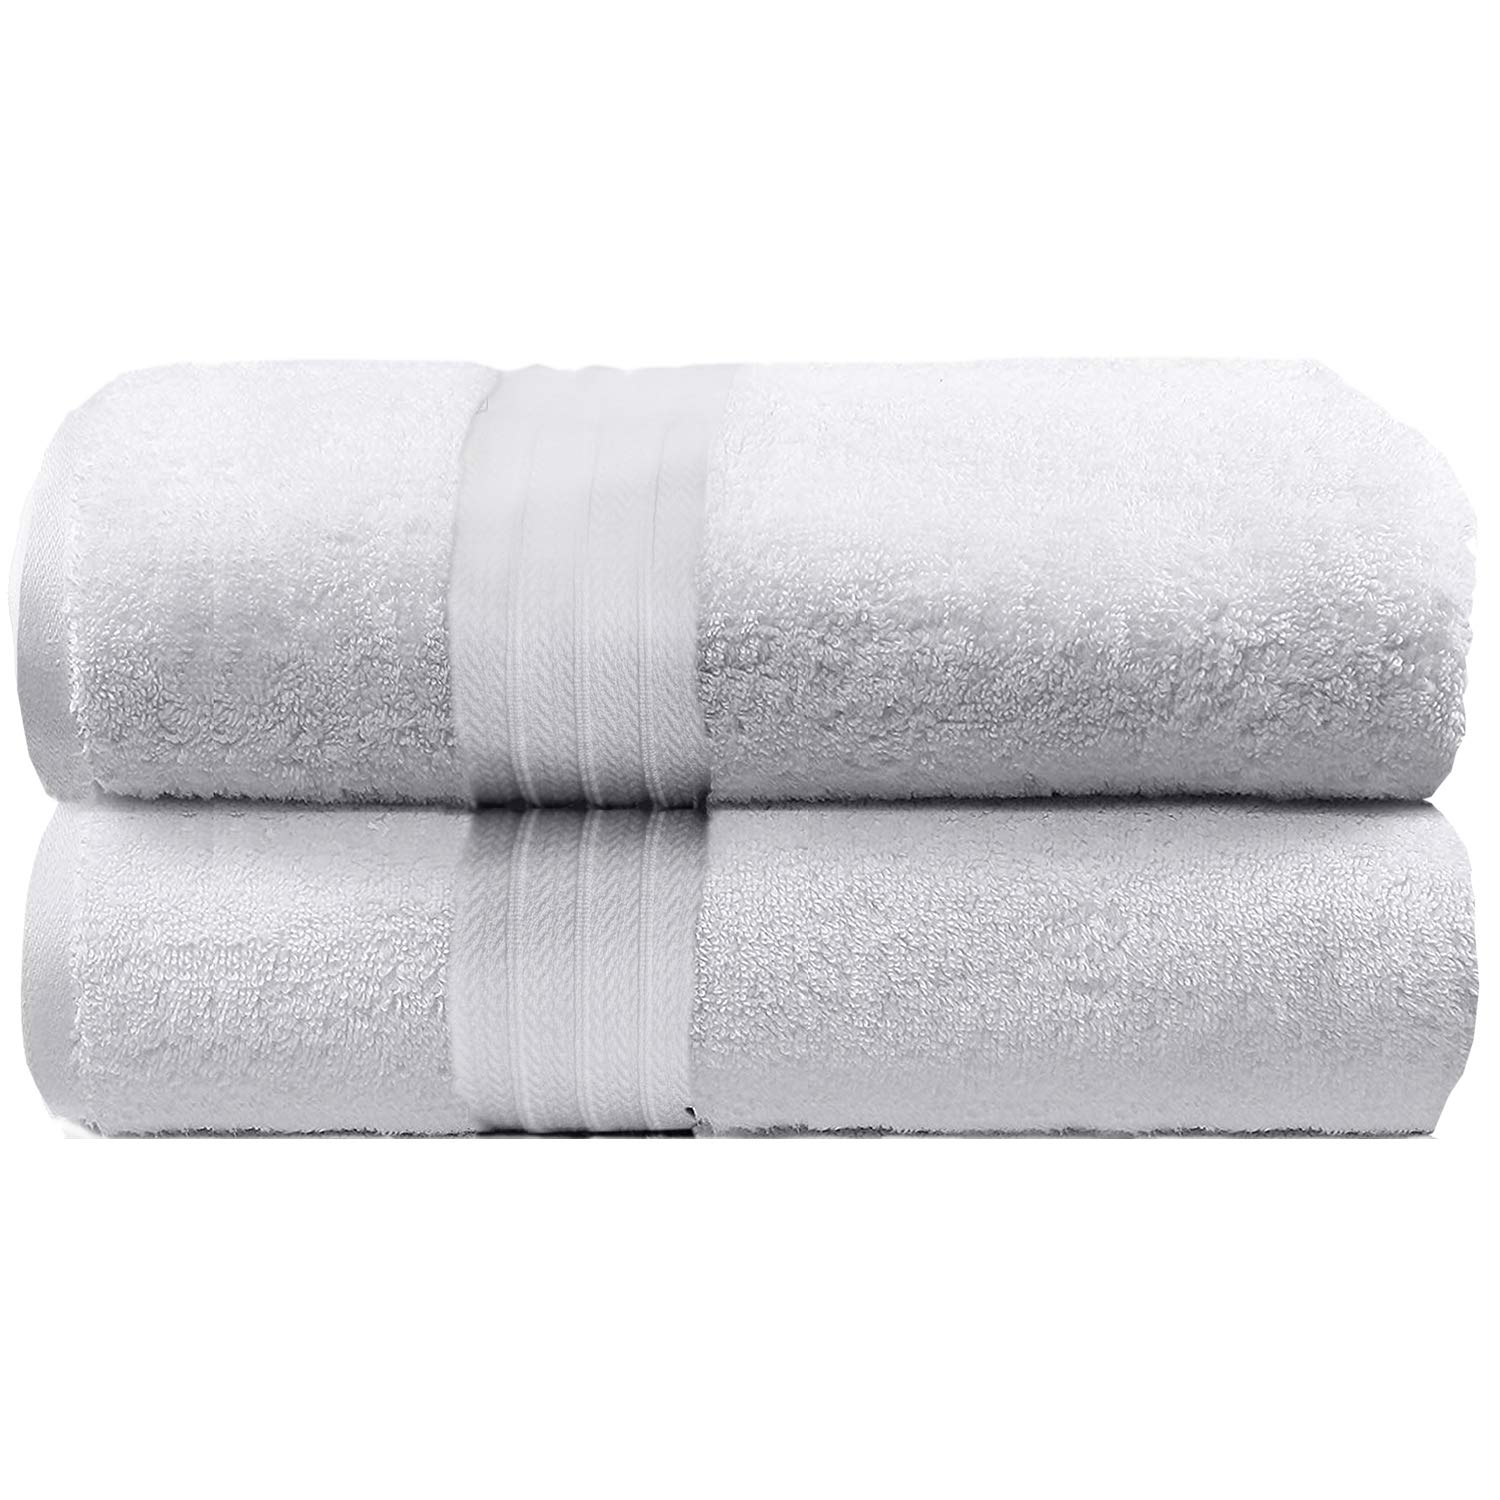 Qute Home Cotton Bath Towels